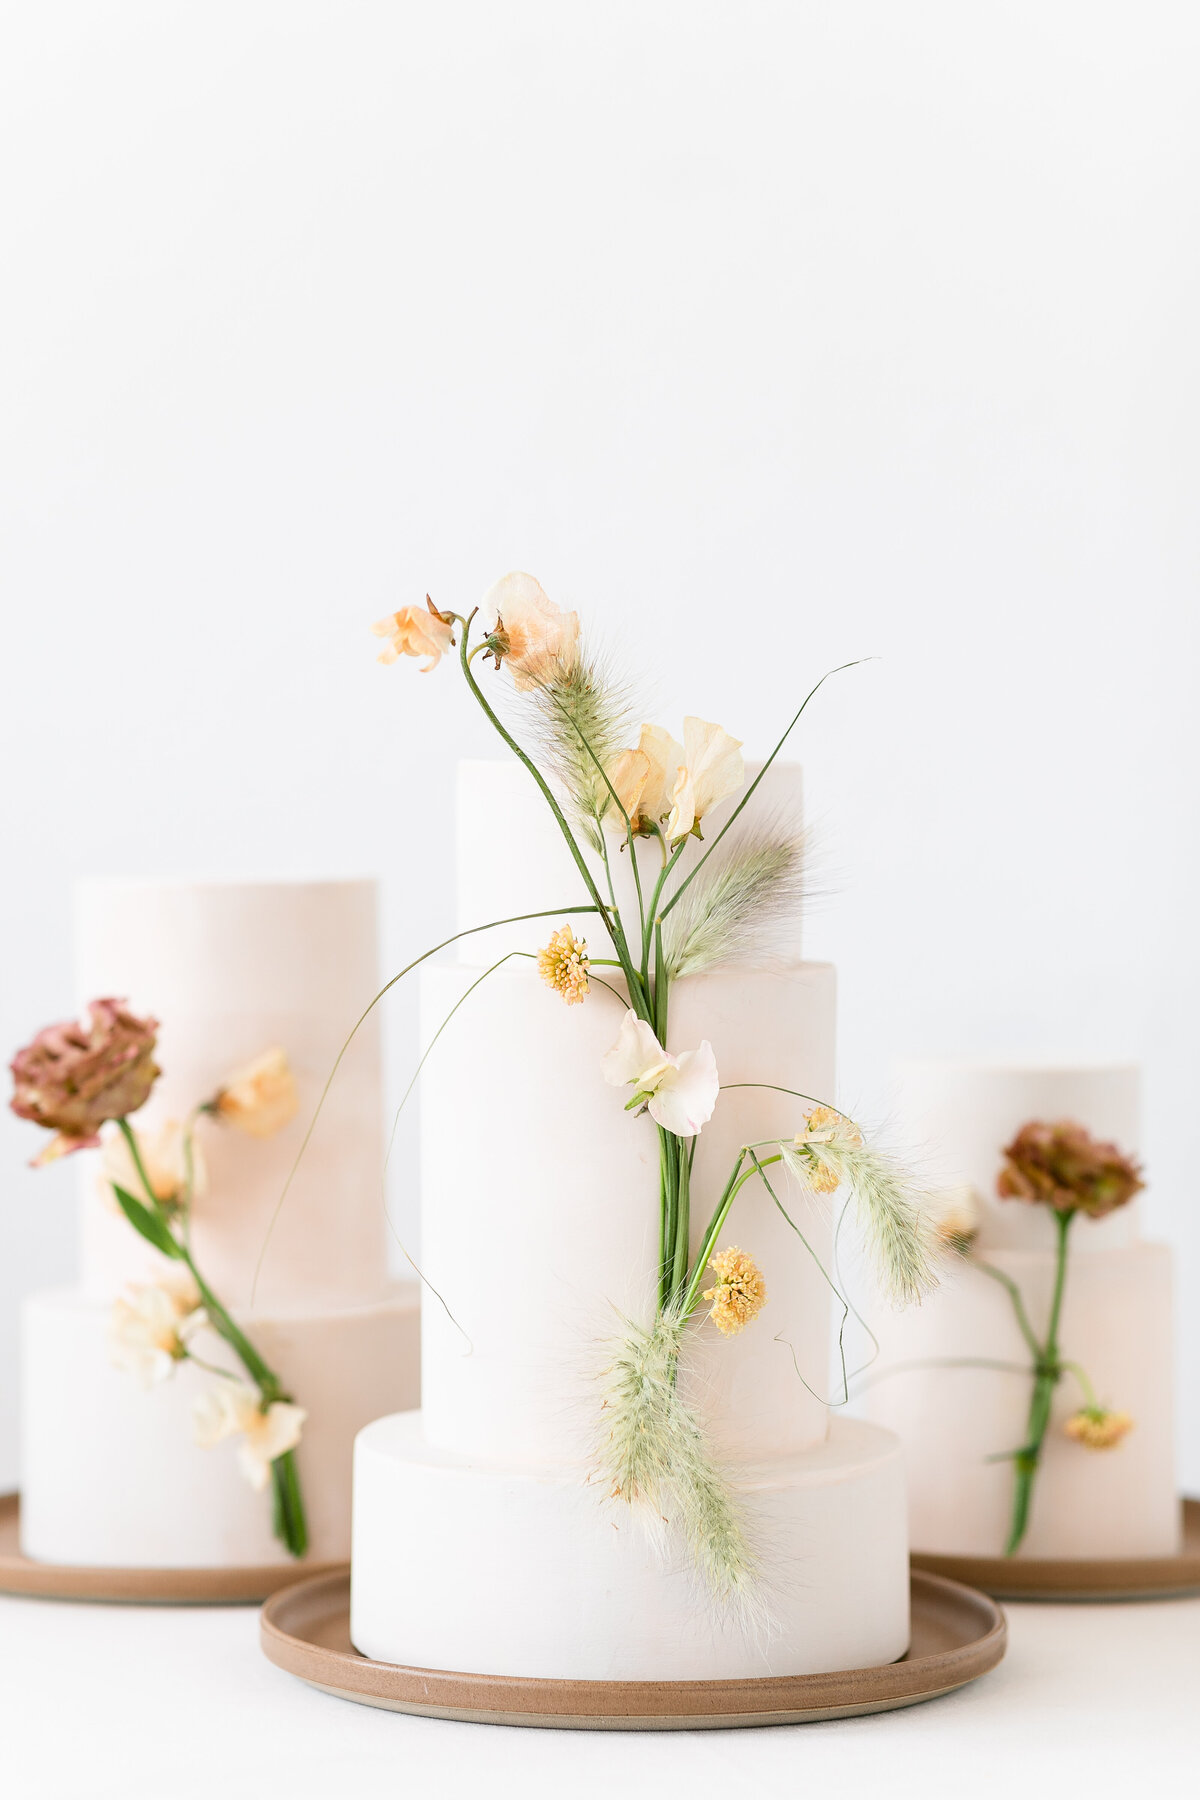 Bold_Minimalist_Editorial_Styled_Wedding-153